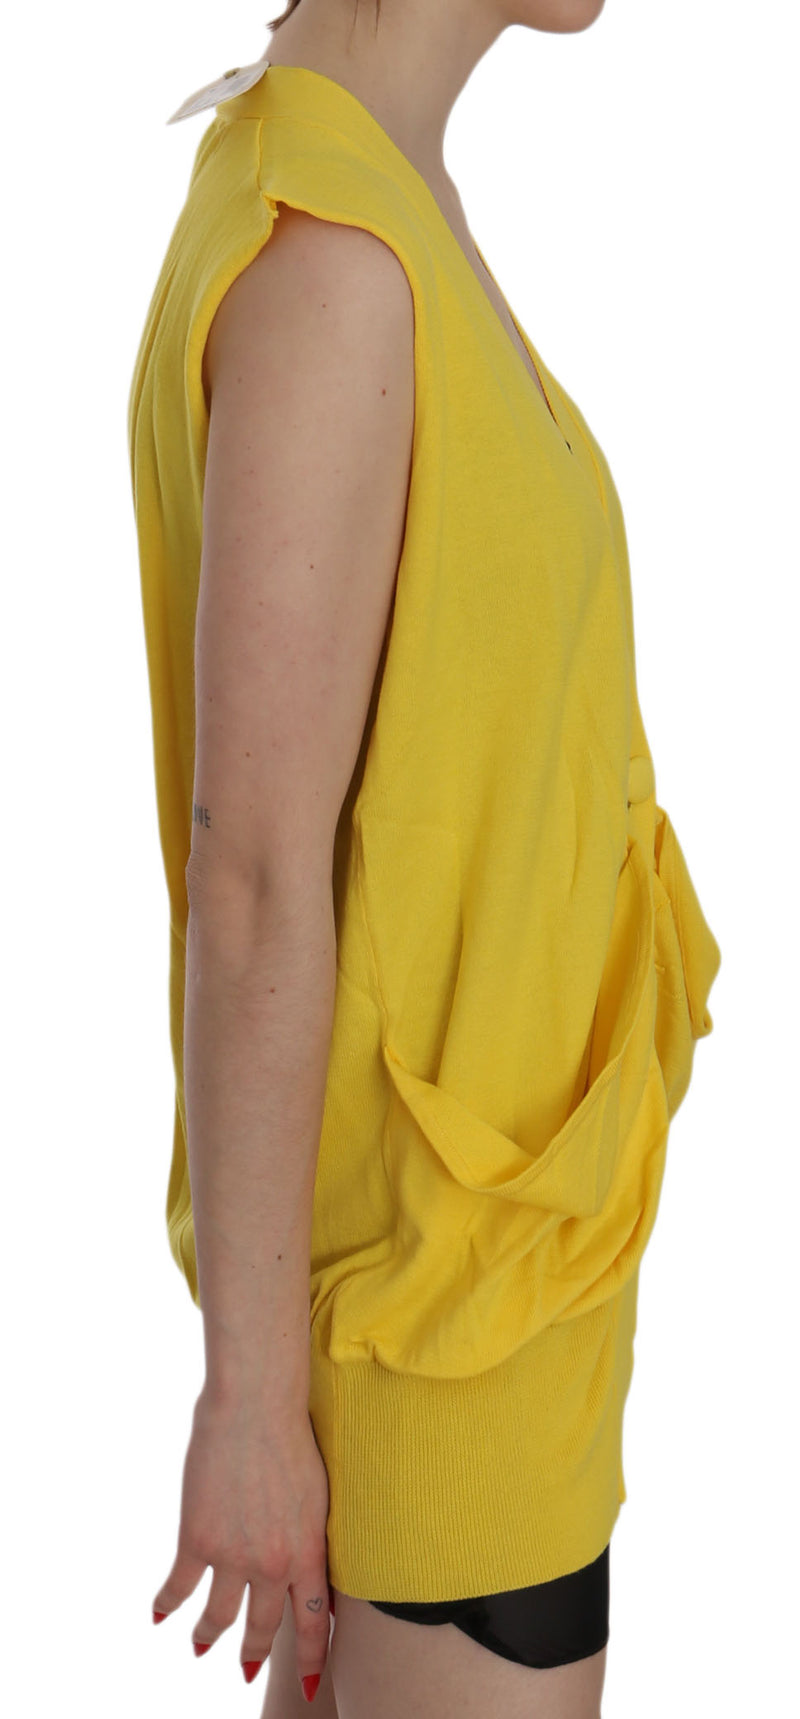 Yellow 100% Cotton Sleeveless Cardigan Top Vest